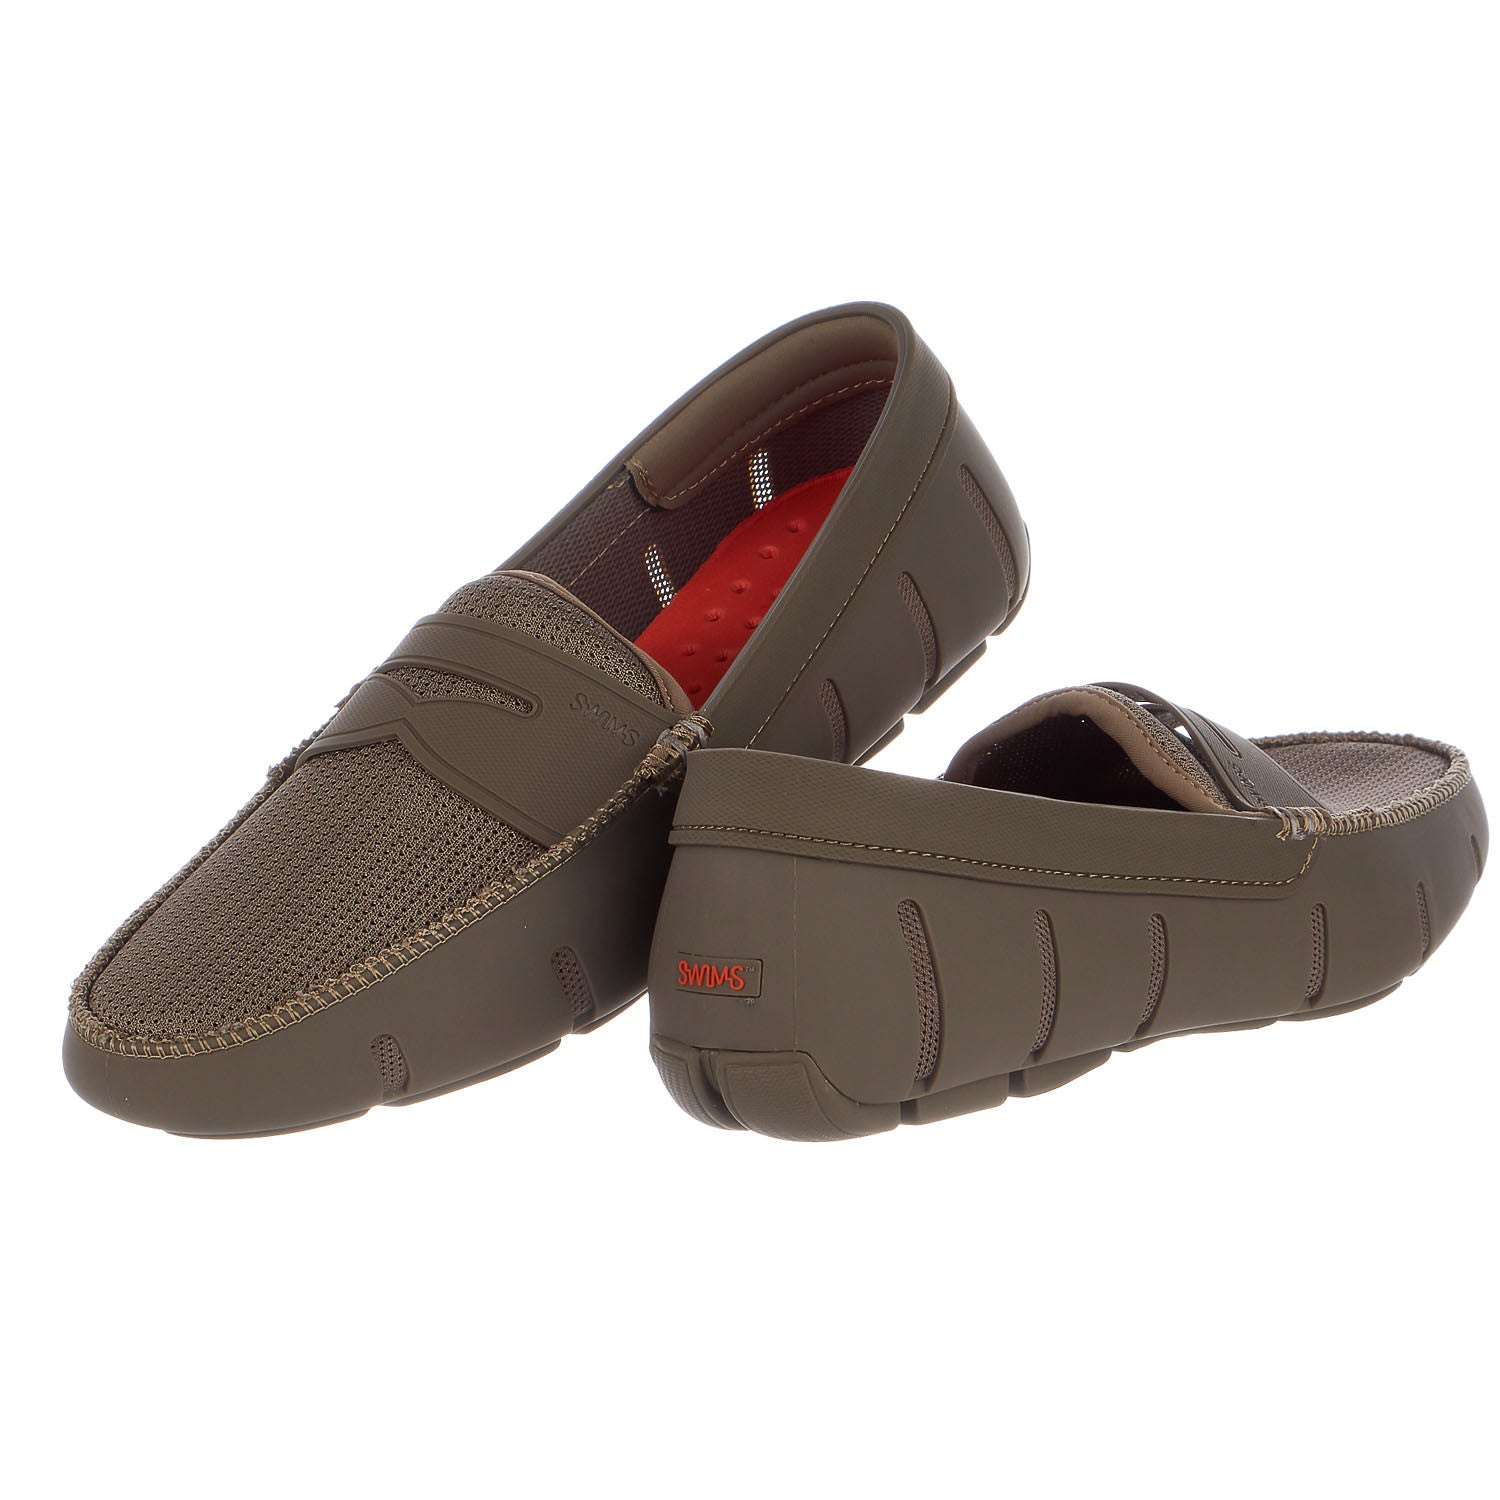 366a174c76c Swims Penny Loafer - Mens - Shoplifestyle